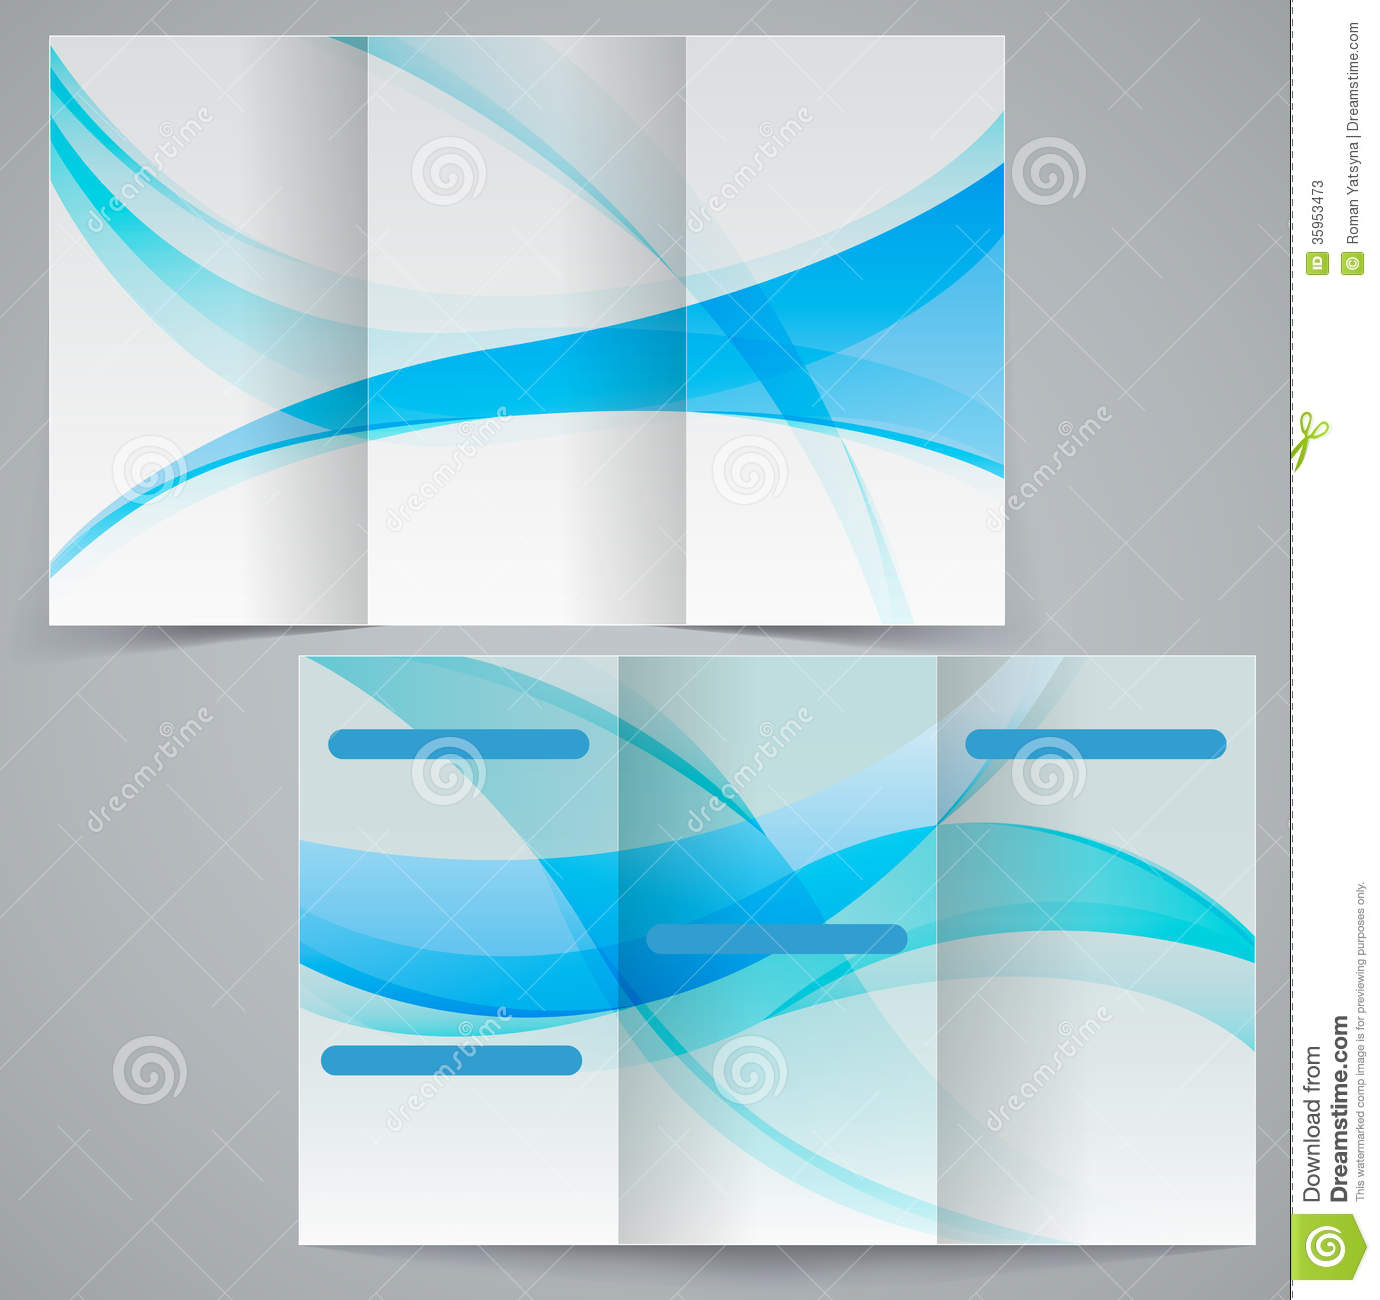 Tri fold business brochure template vector blue d stock for Brochure templates